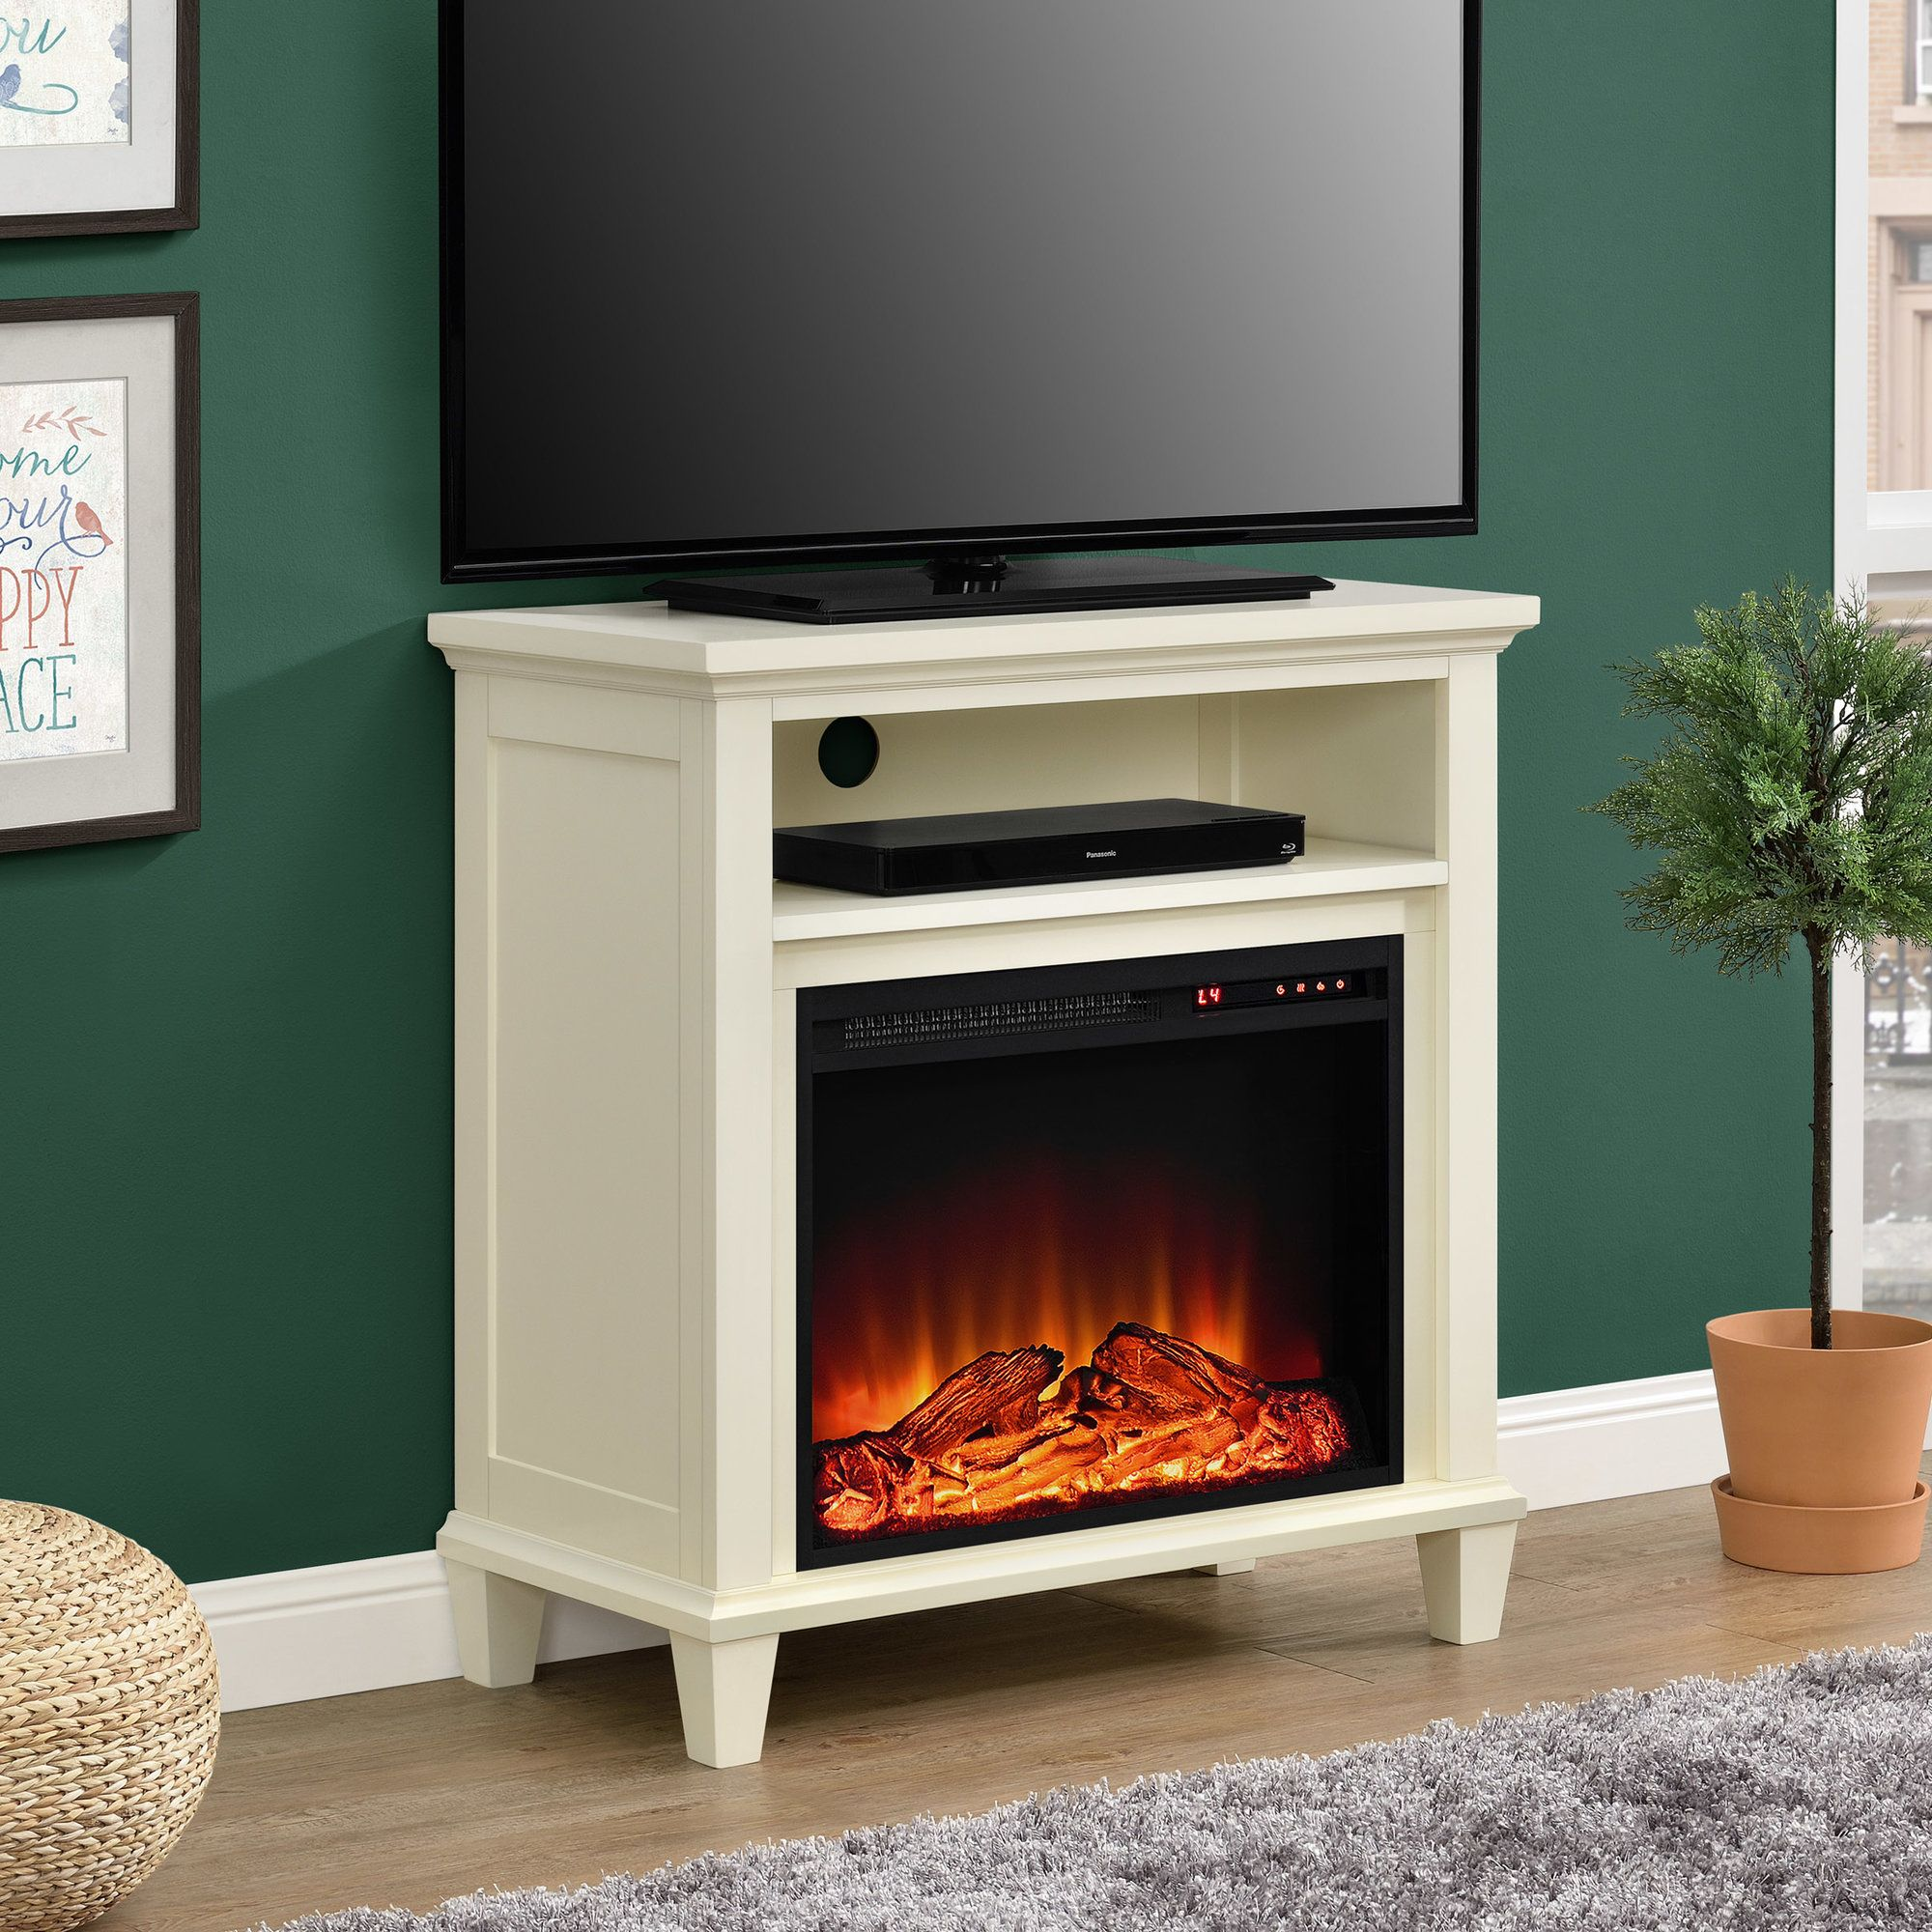 Floating Fireplace Tv Stand Best Of Joseph Media Console with Electric Fireplace